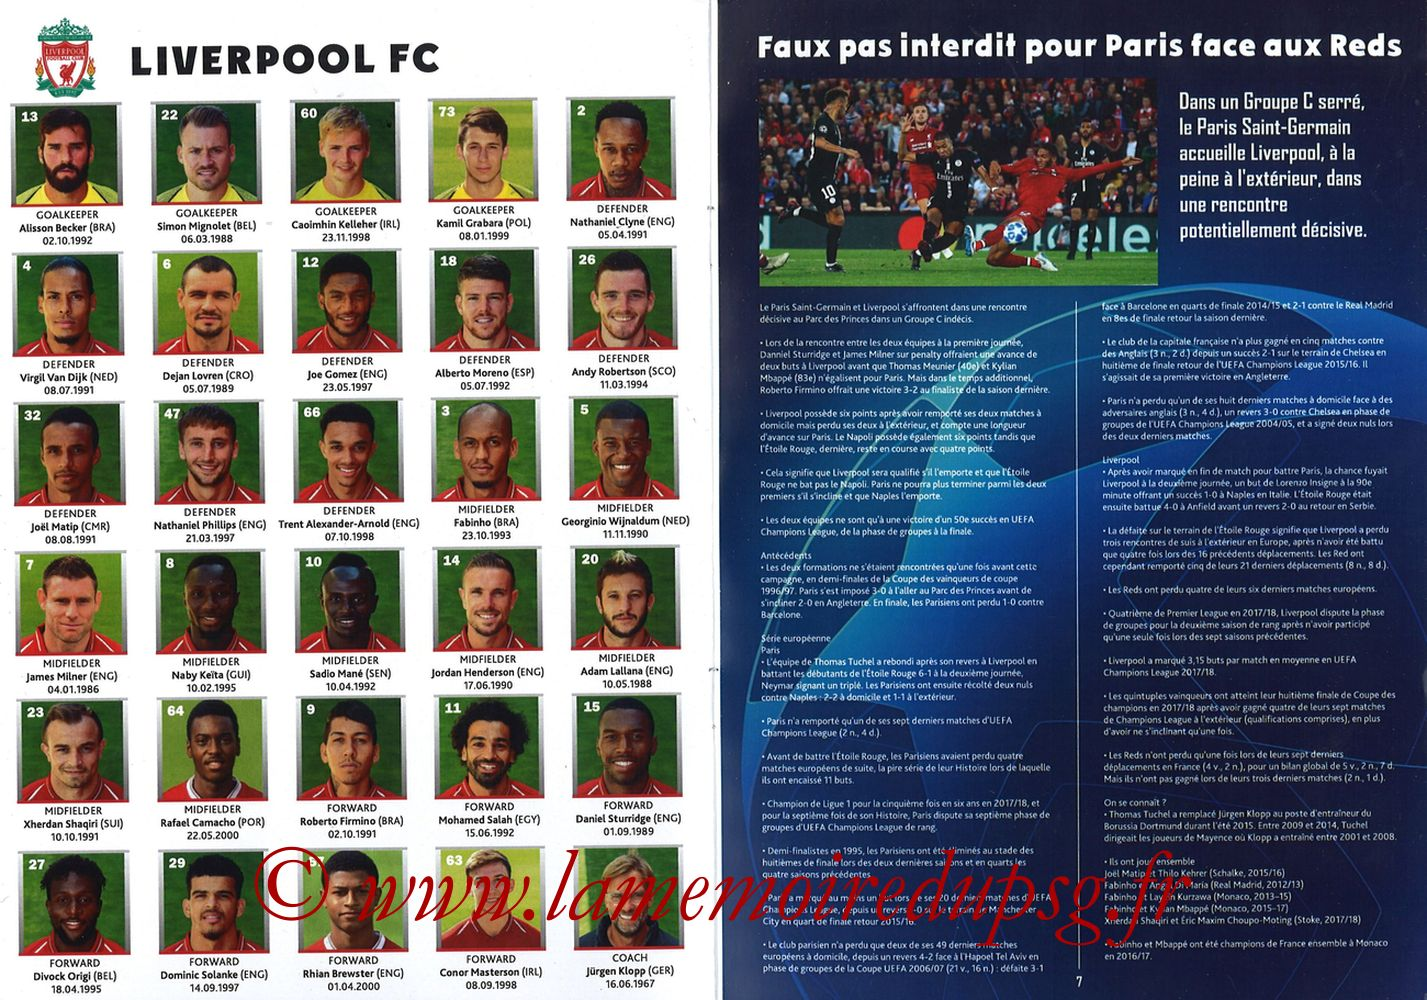 2018-11-28  PSG-Liverpool (5ème Poule C1, Programme pirate) - Pages 06 et 07